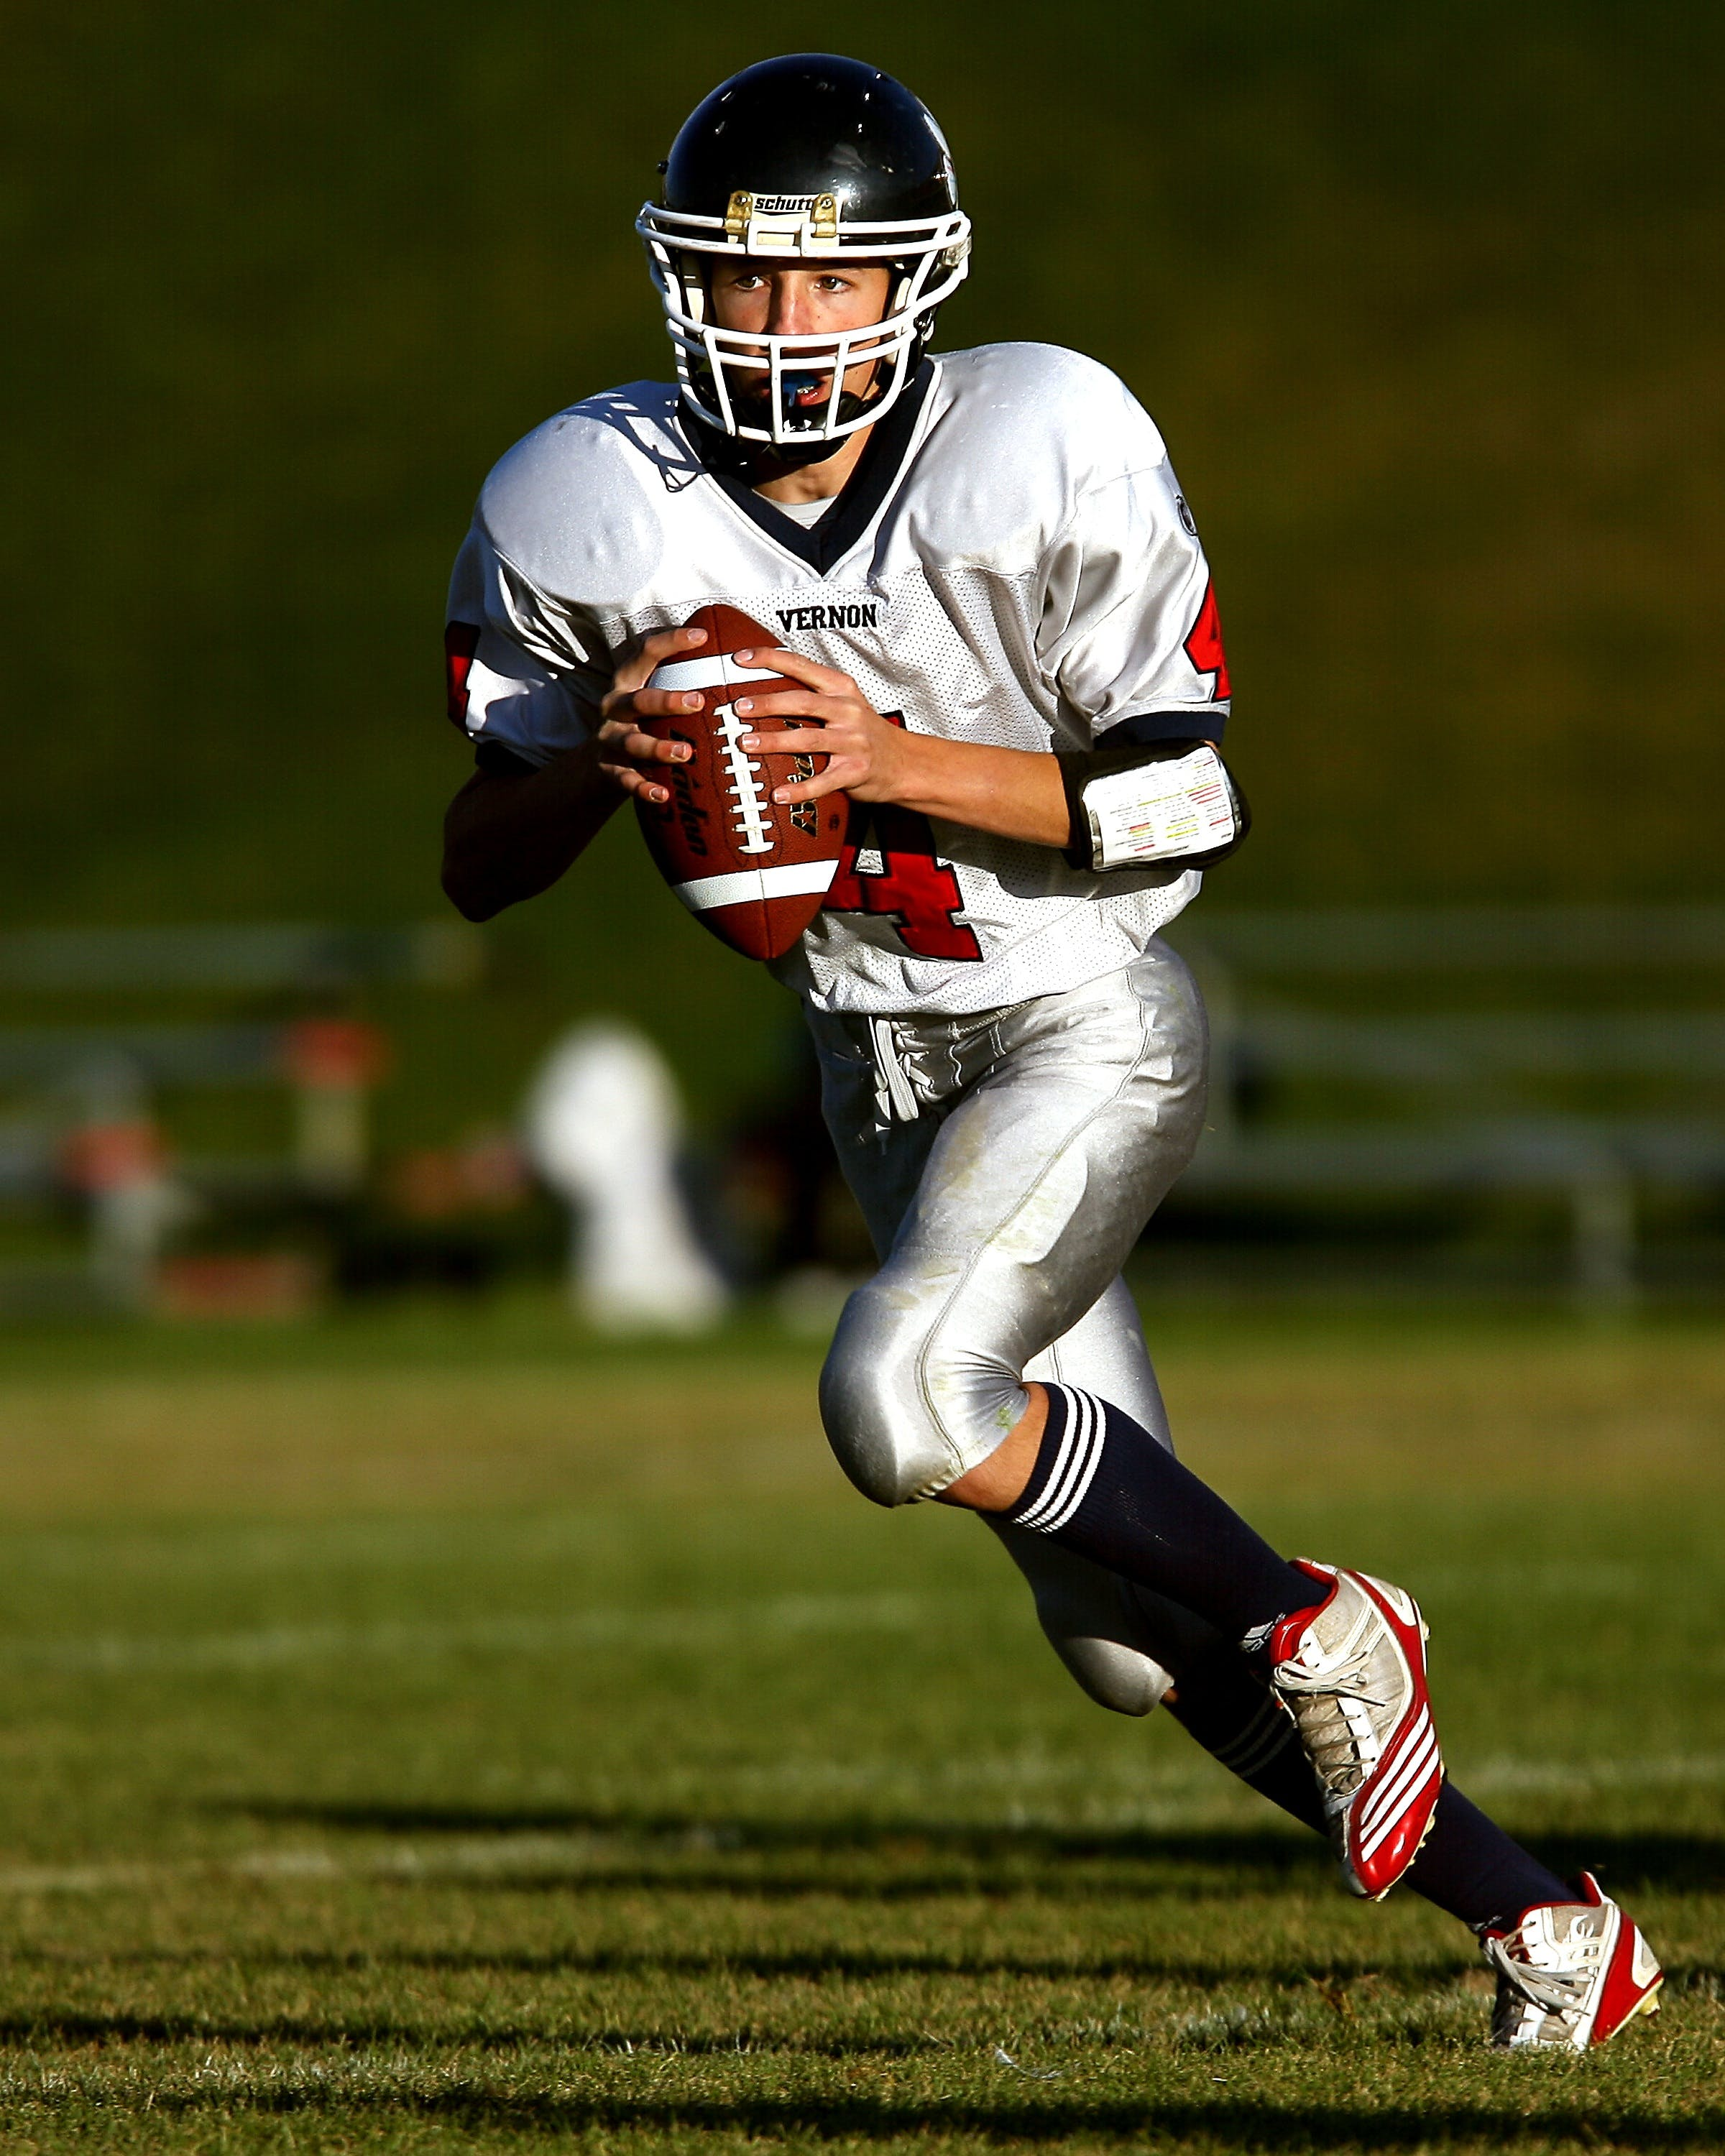 Man Holding Football While Running